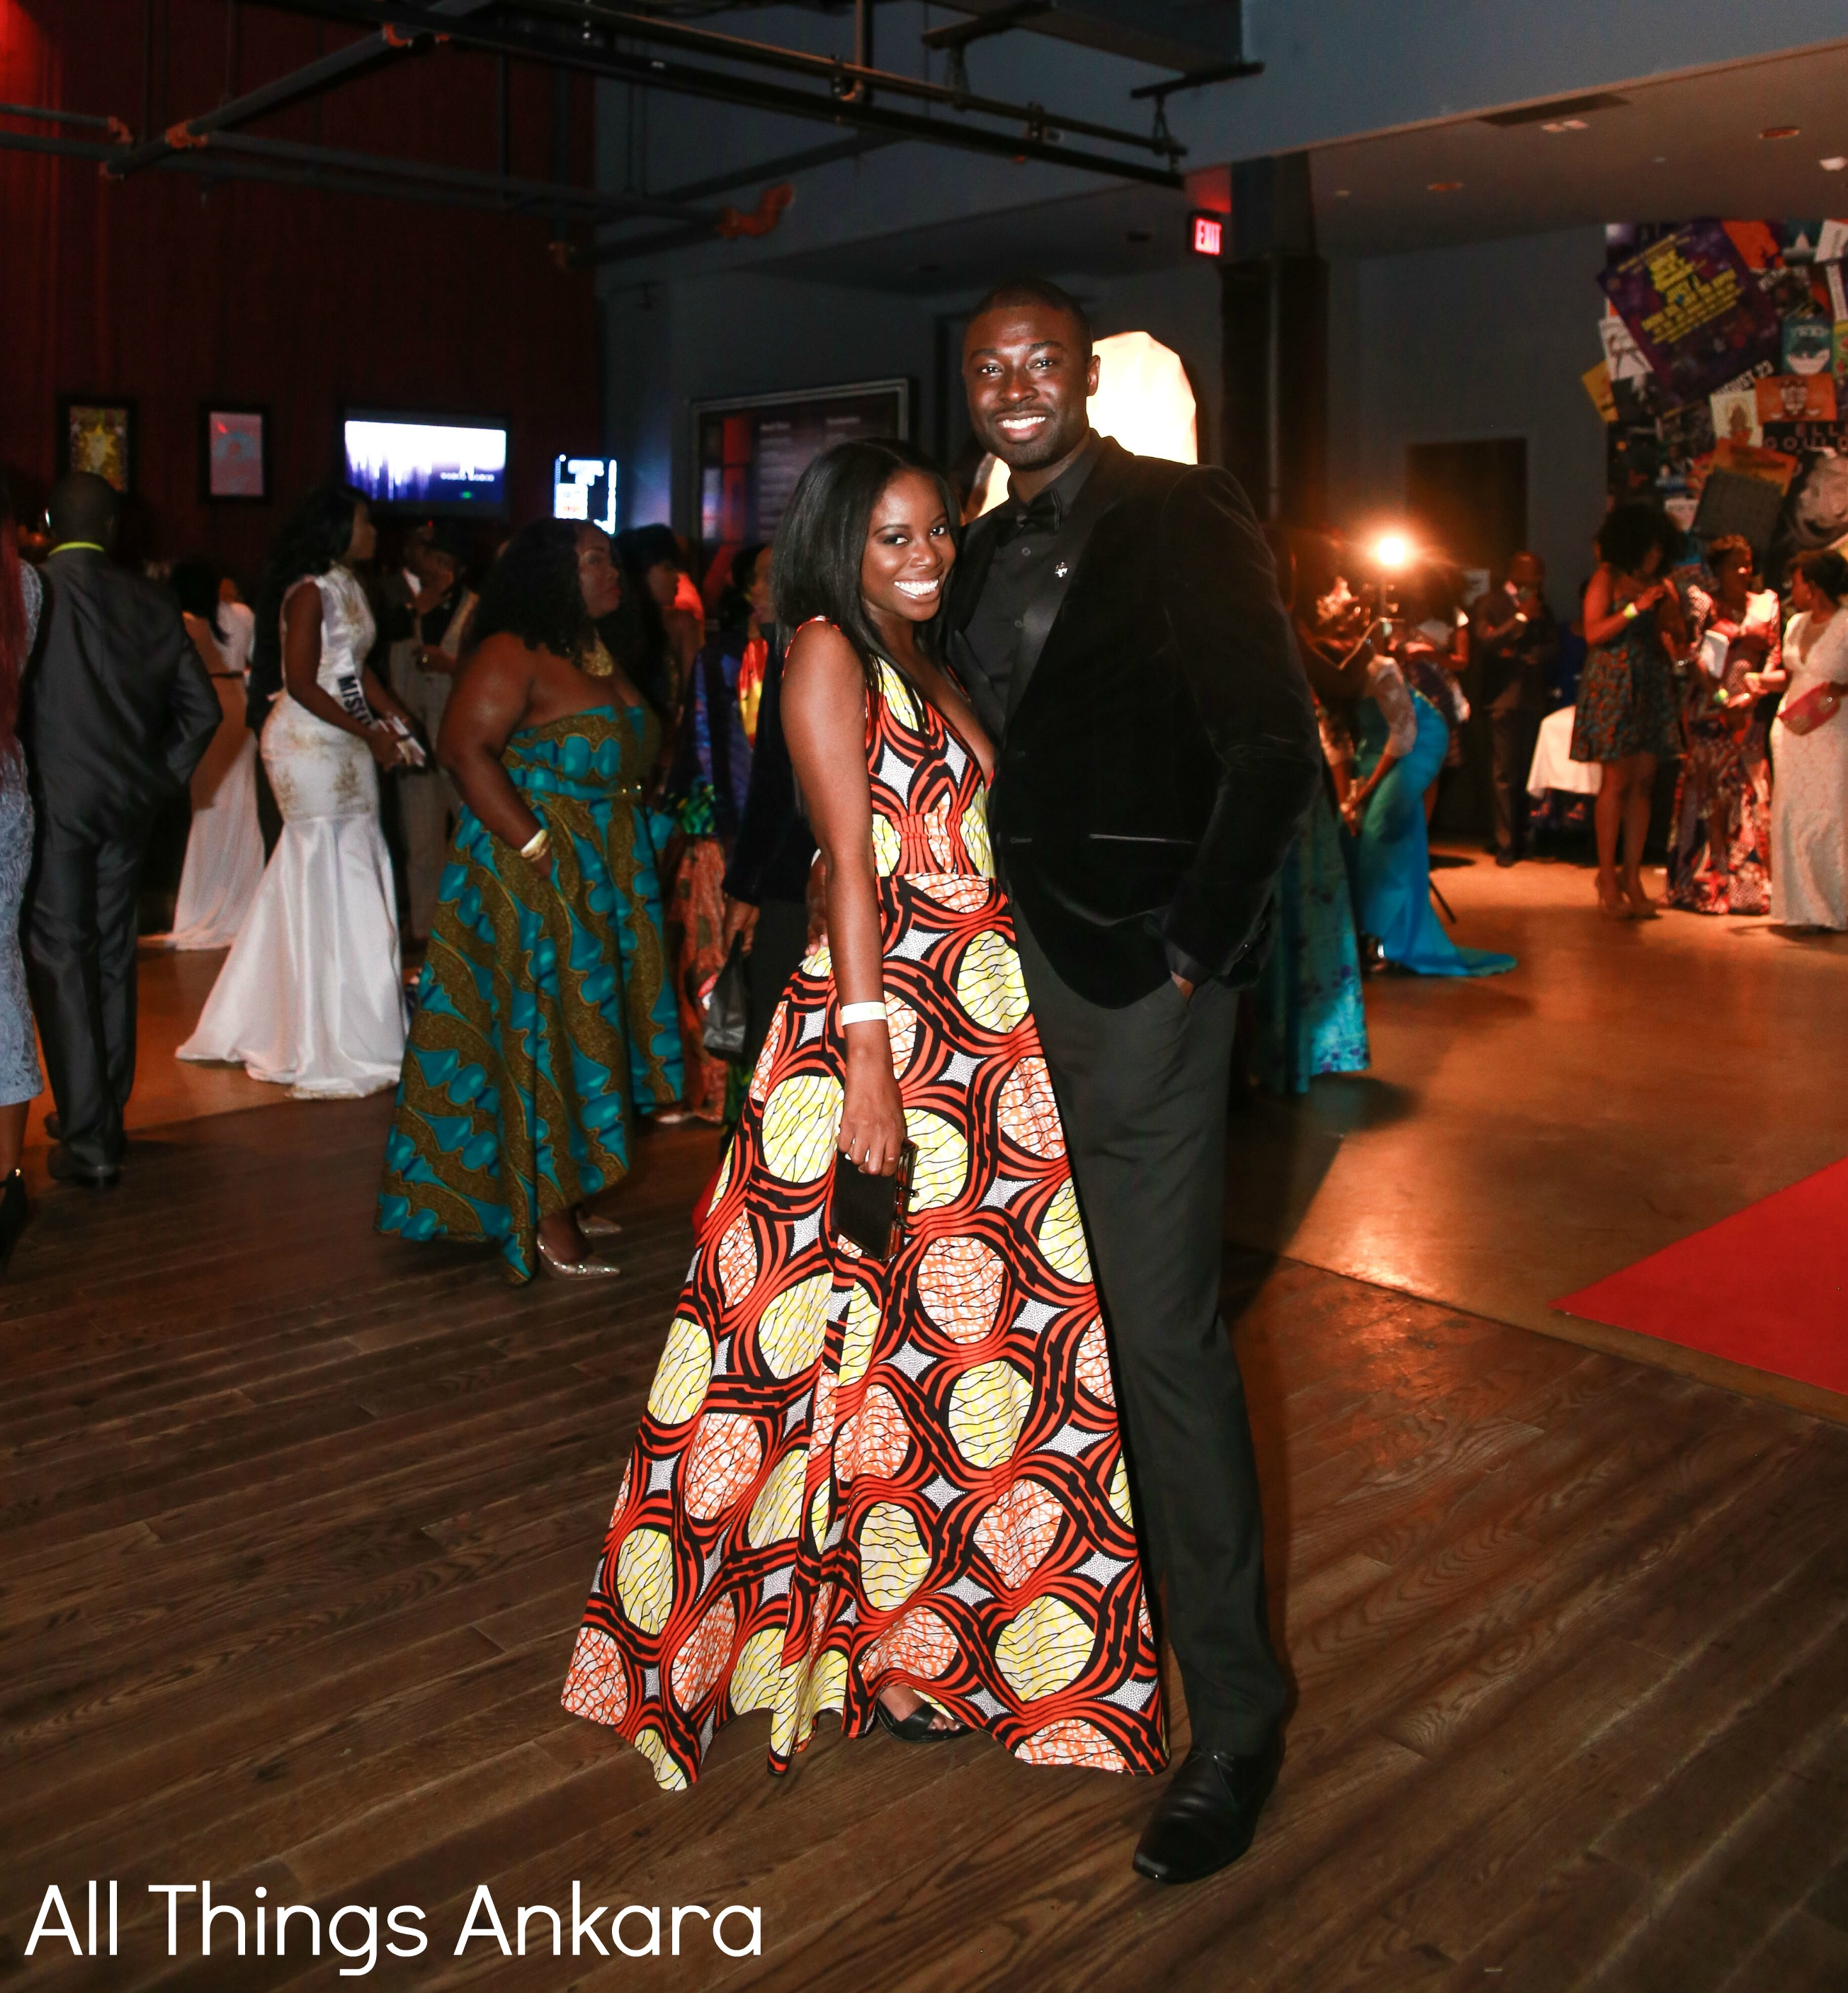 ball-gwb-commissions-best-dressed-couples-at-gwb-commissions-7th-annual-green-white-blue-ball-2016-3